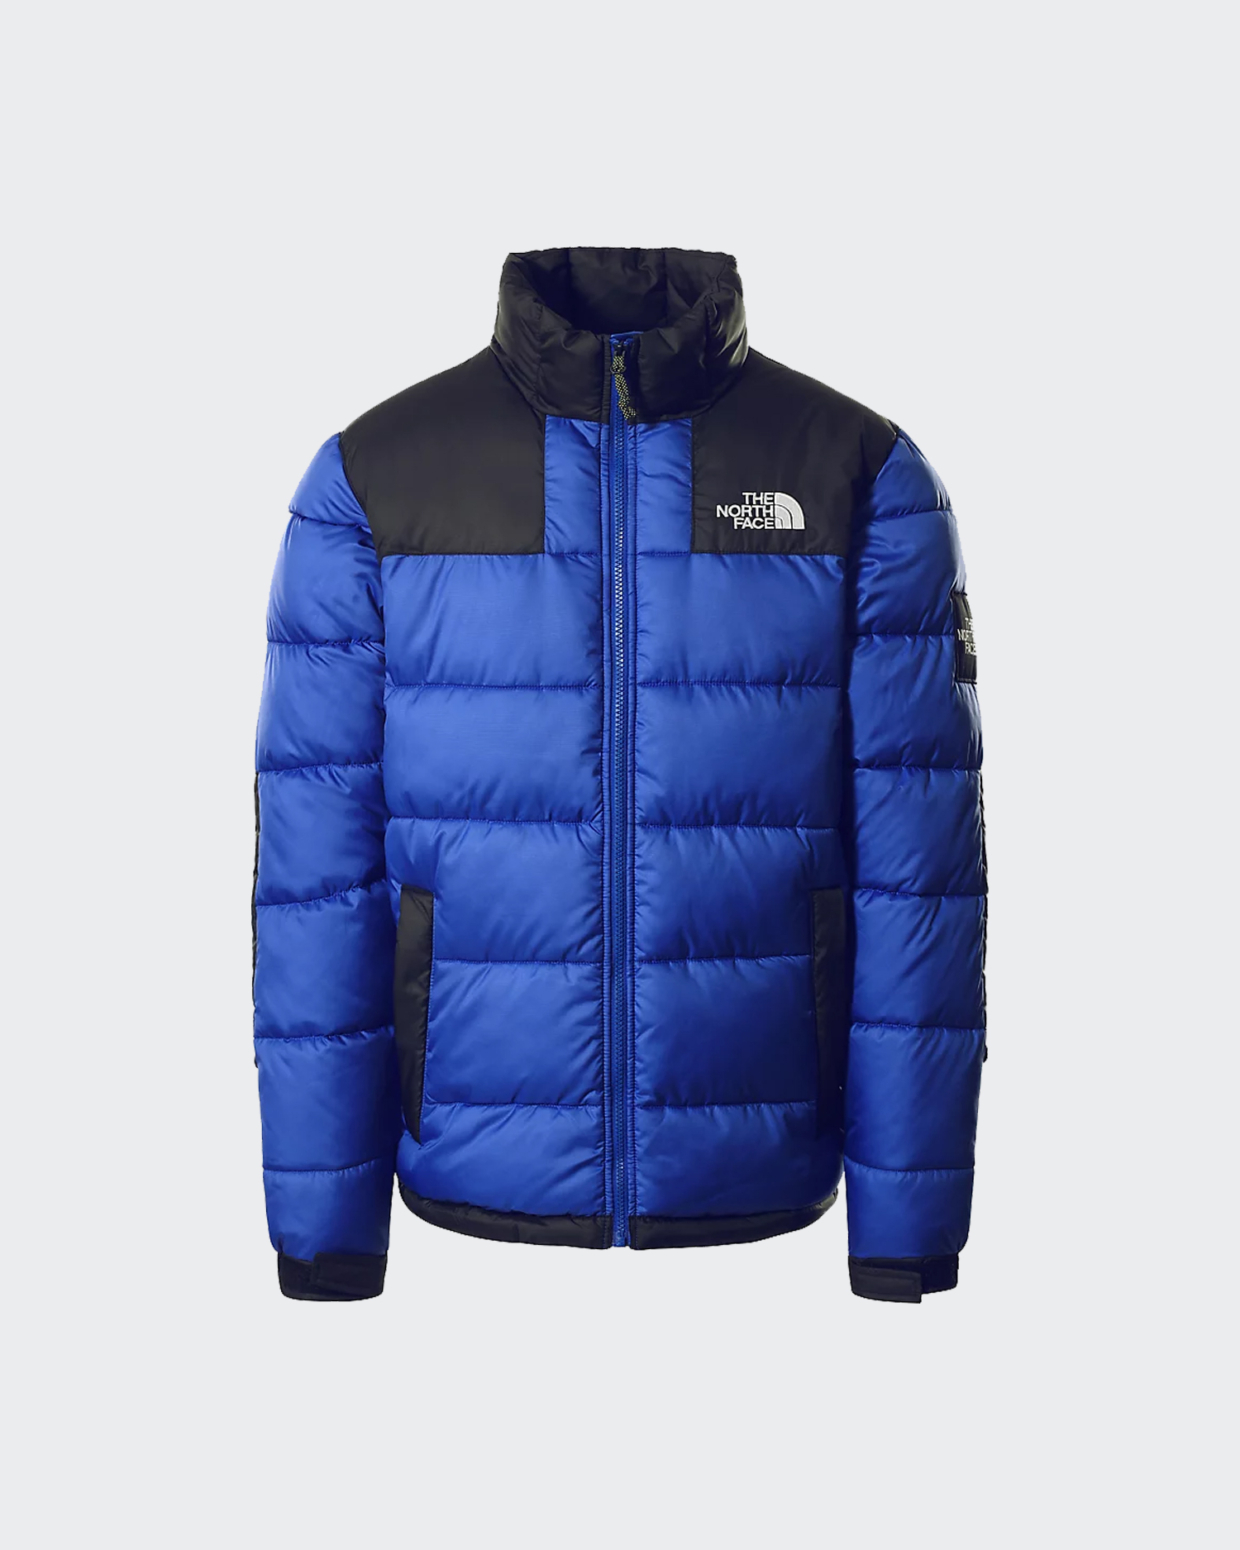 The North Face Search&Rescue Insulated Jacket